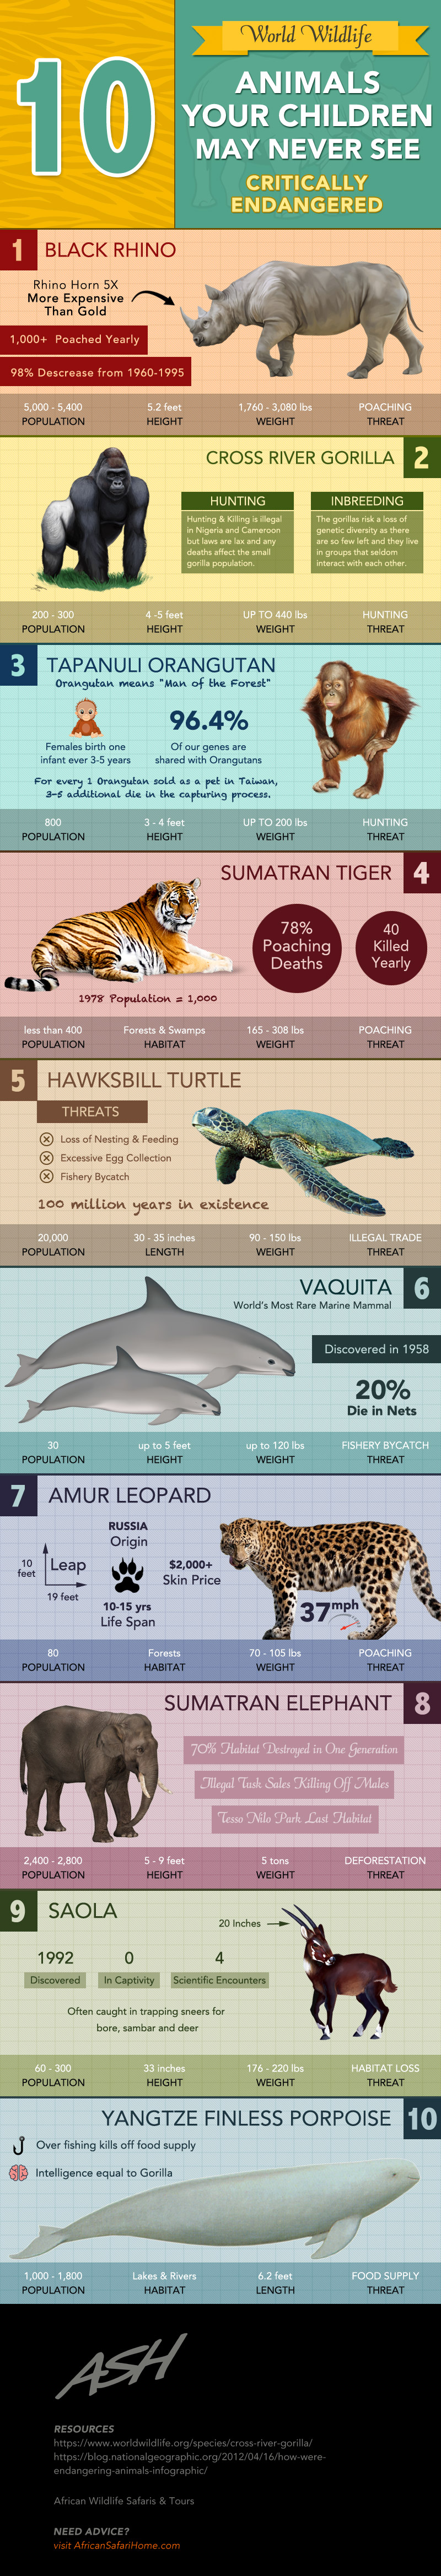 10 Endangered Creatures Our Next Generation May Not See - Infographic